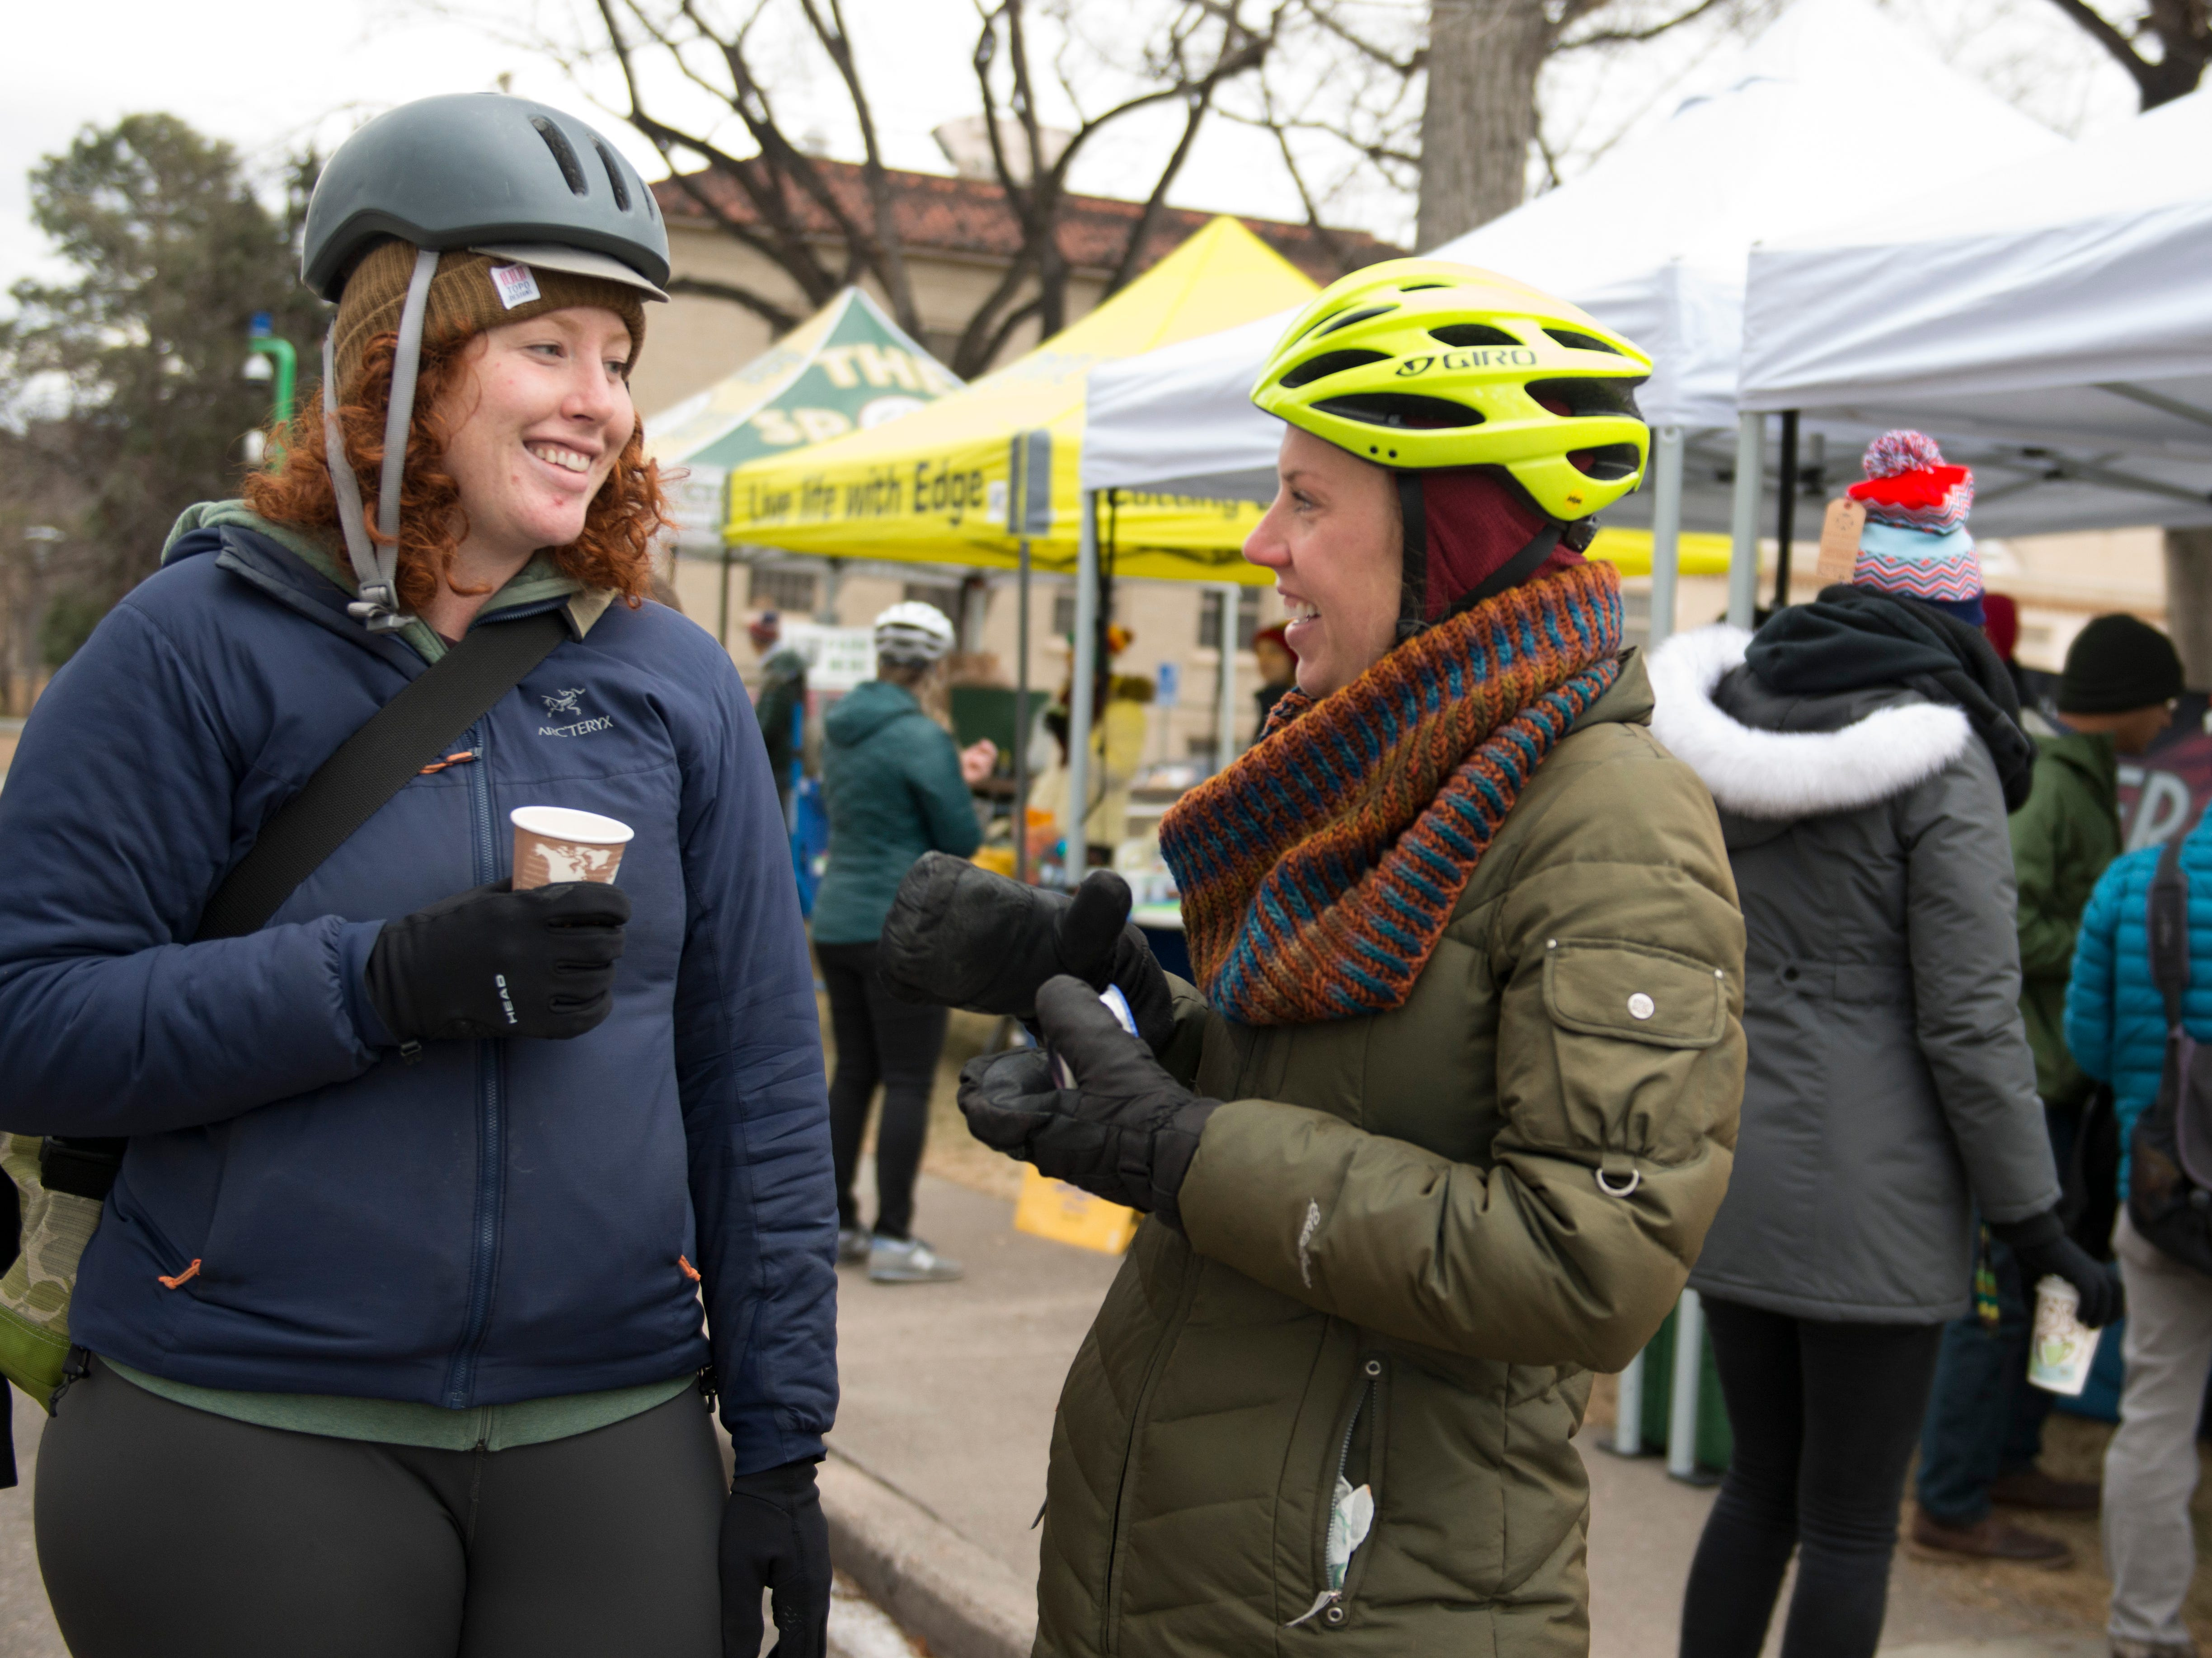 Allie McRae and Molly McLaughlin chat while they sip coffee at a Winter Bike to Work Day station in the CSU Oval on Wednesday, December 12, 2018. Commuters were treated to free breakfast and coffee at nearly 50 stations around Fort Collins.